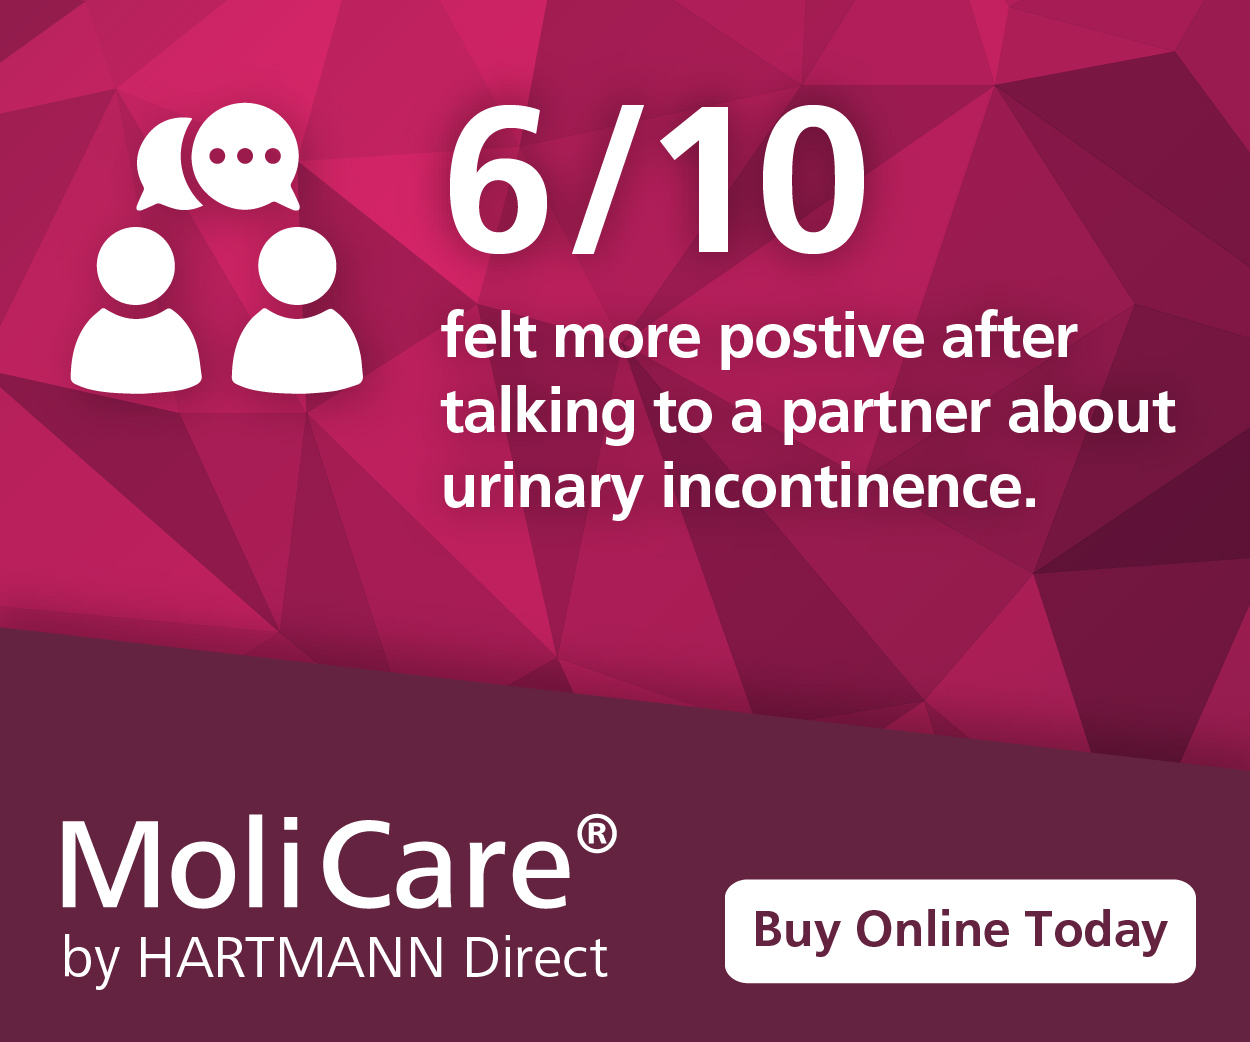 Molicare by Hartmann Direct